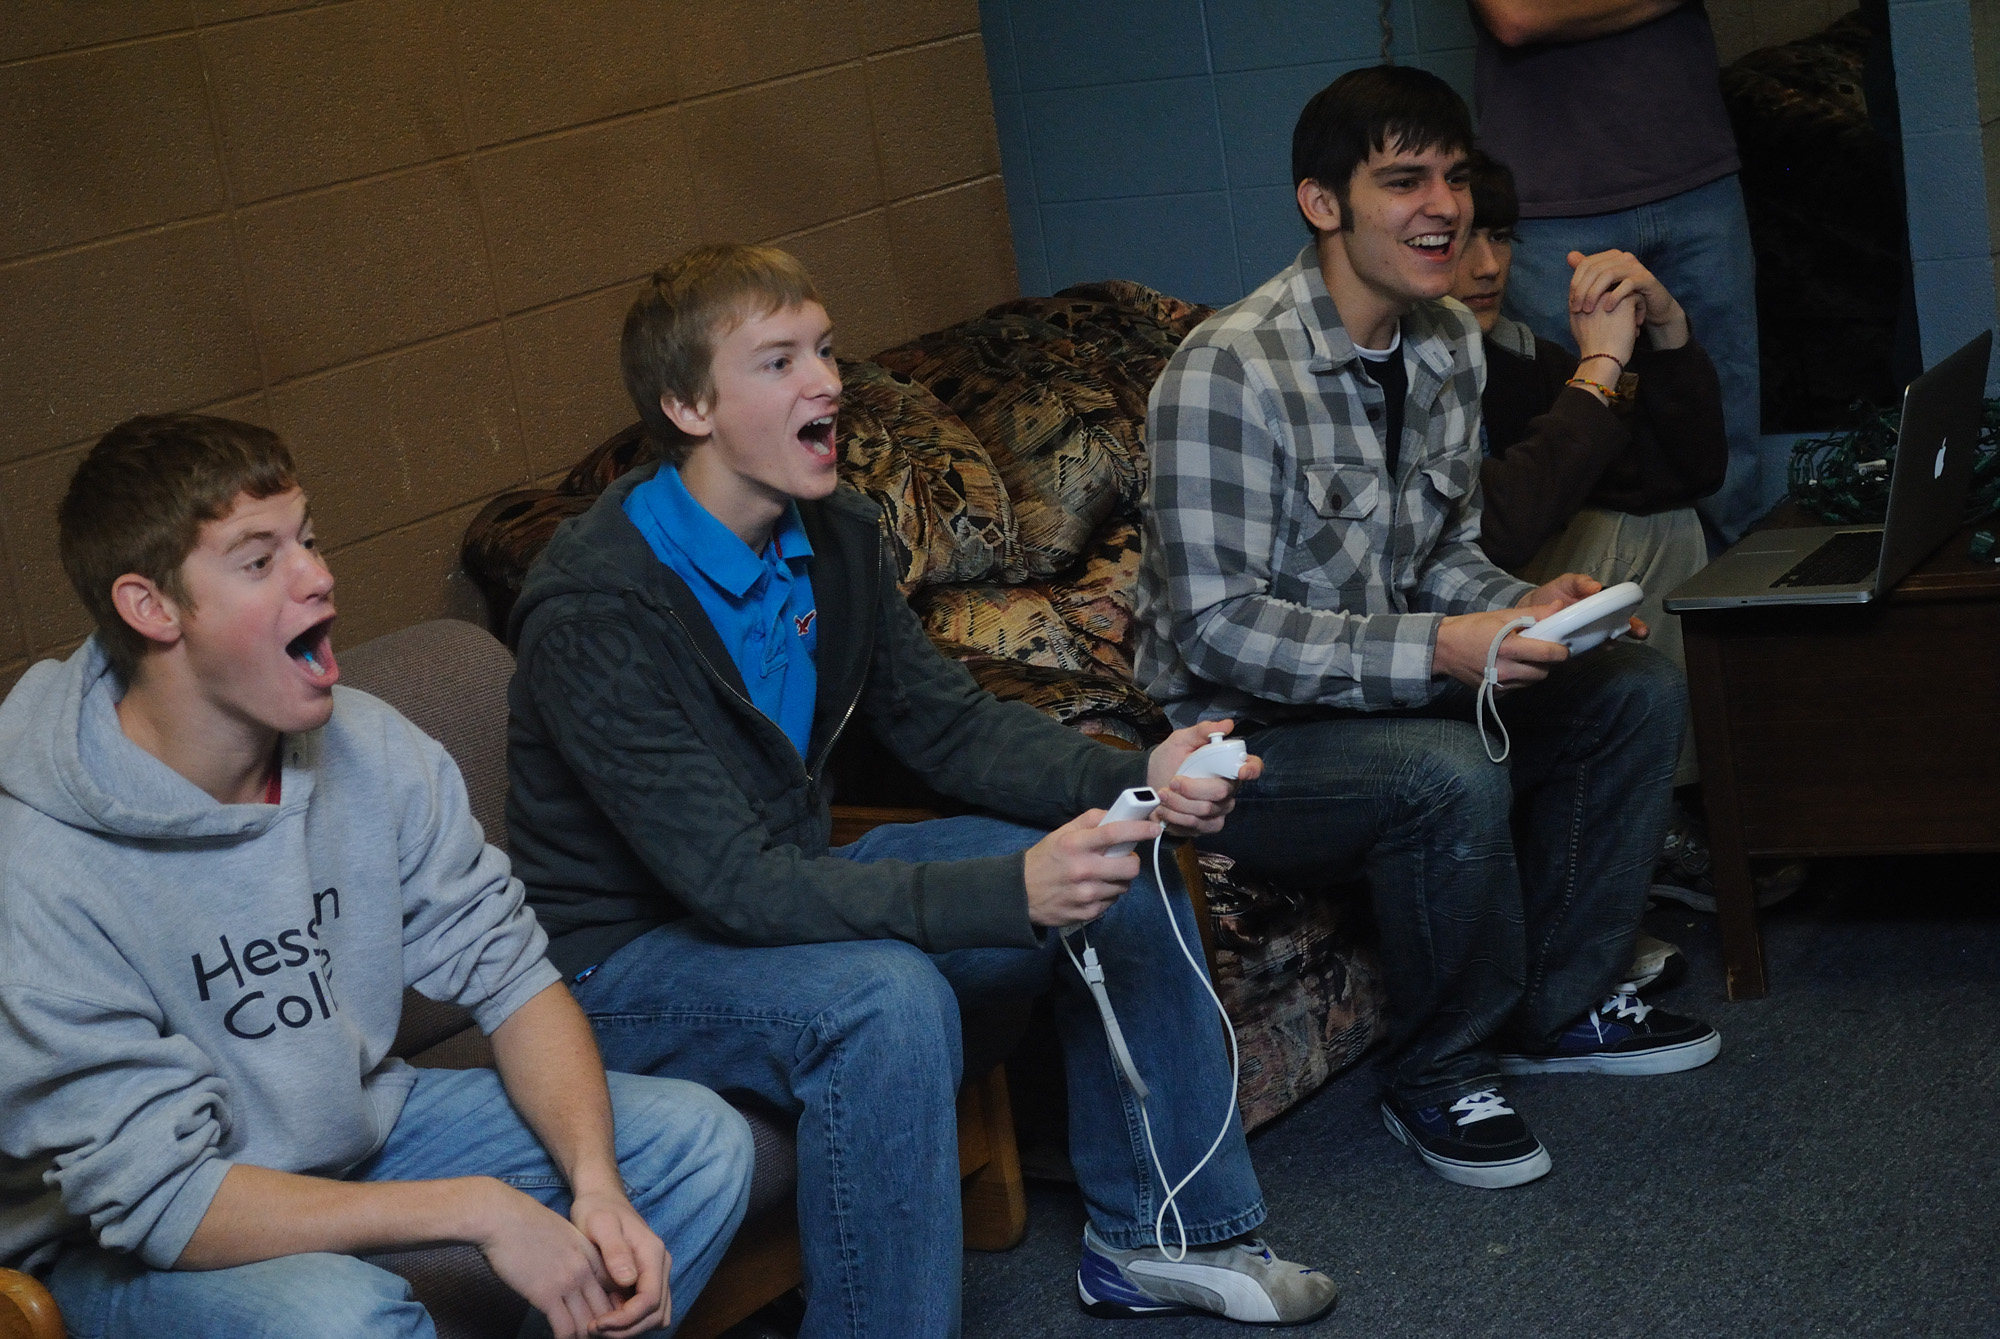 Image result for college kids playing video games